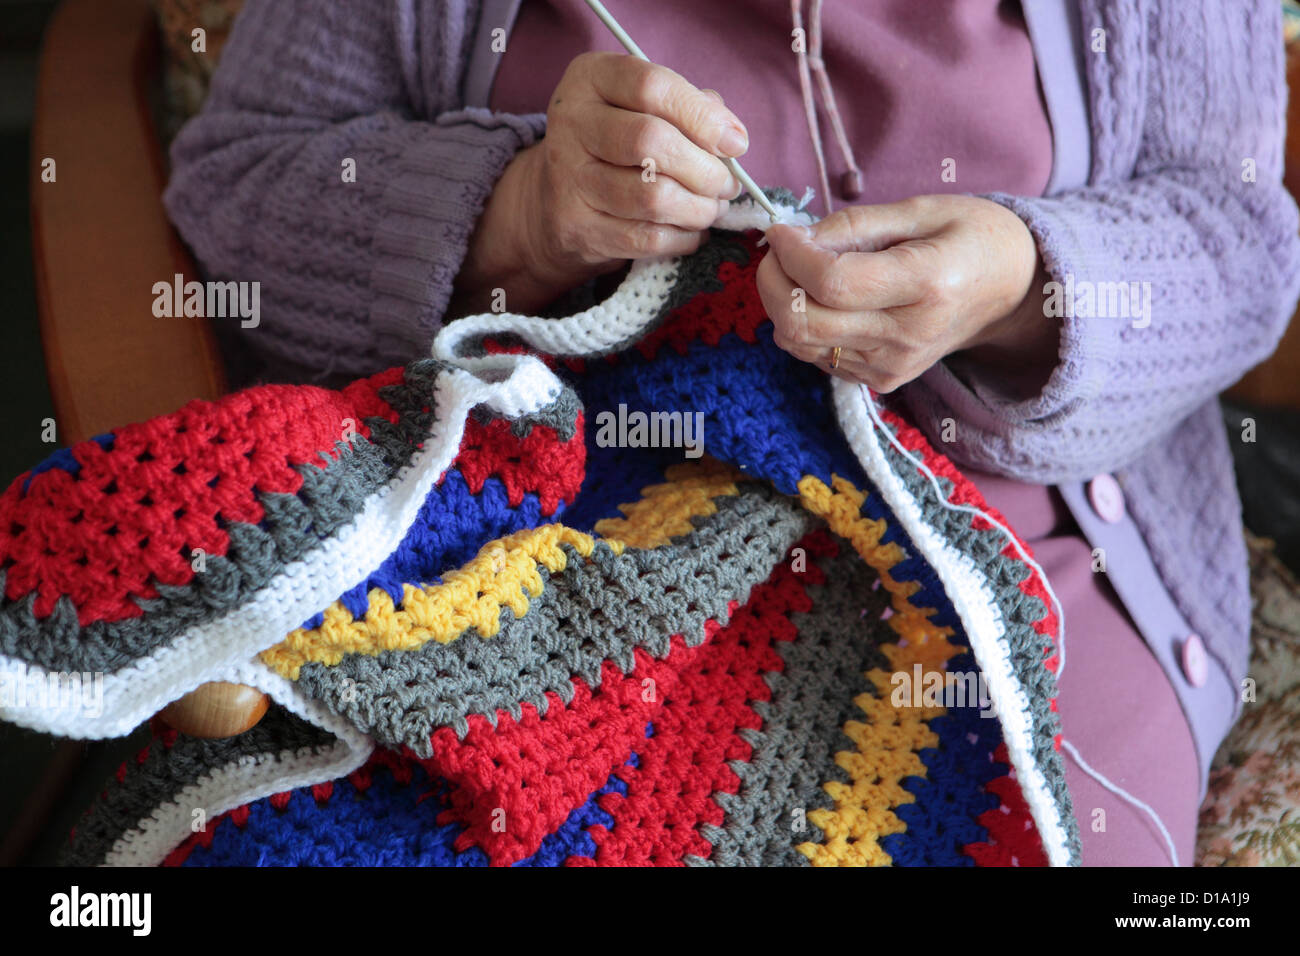 Elderly woman crocheting colorful blanket for charity at home, Suffolk, UK - Stock Image